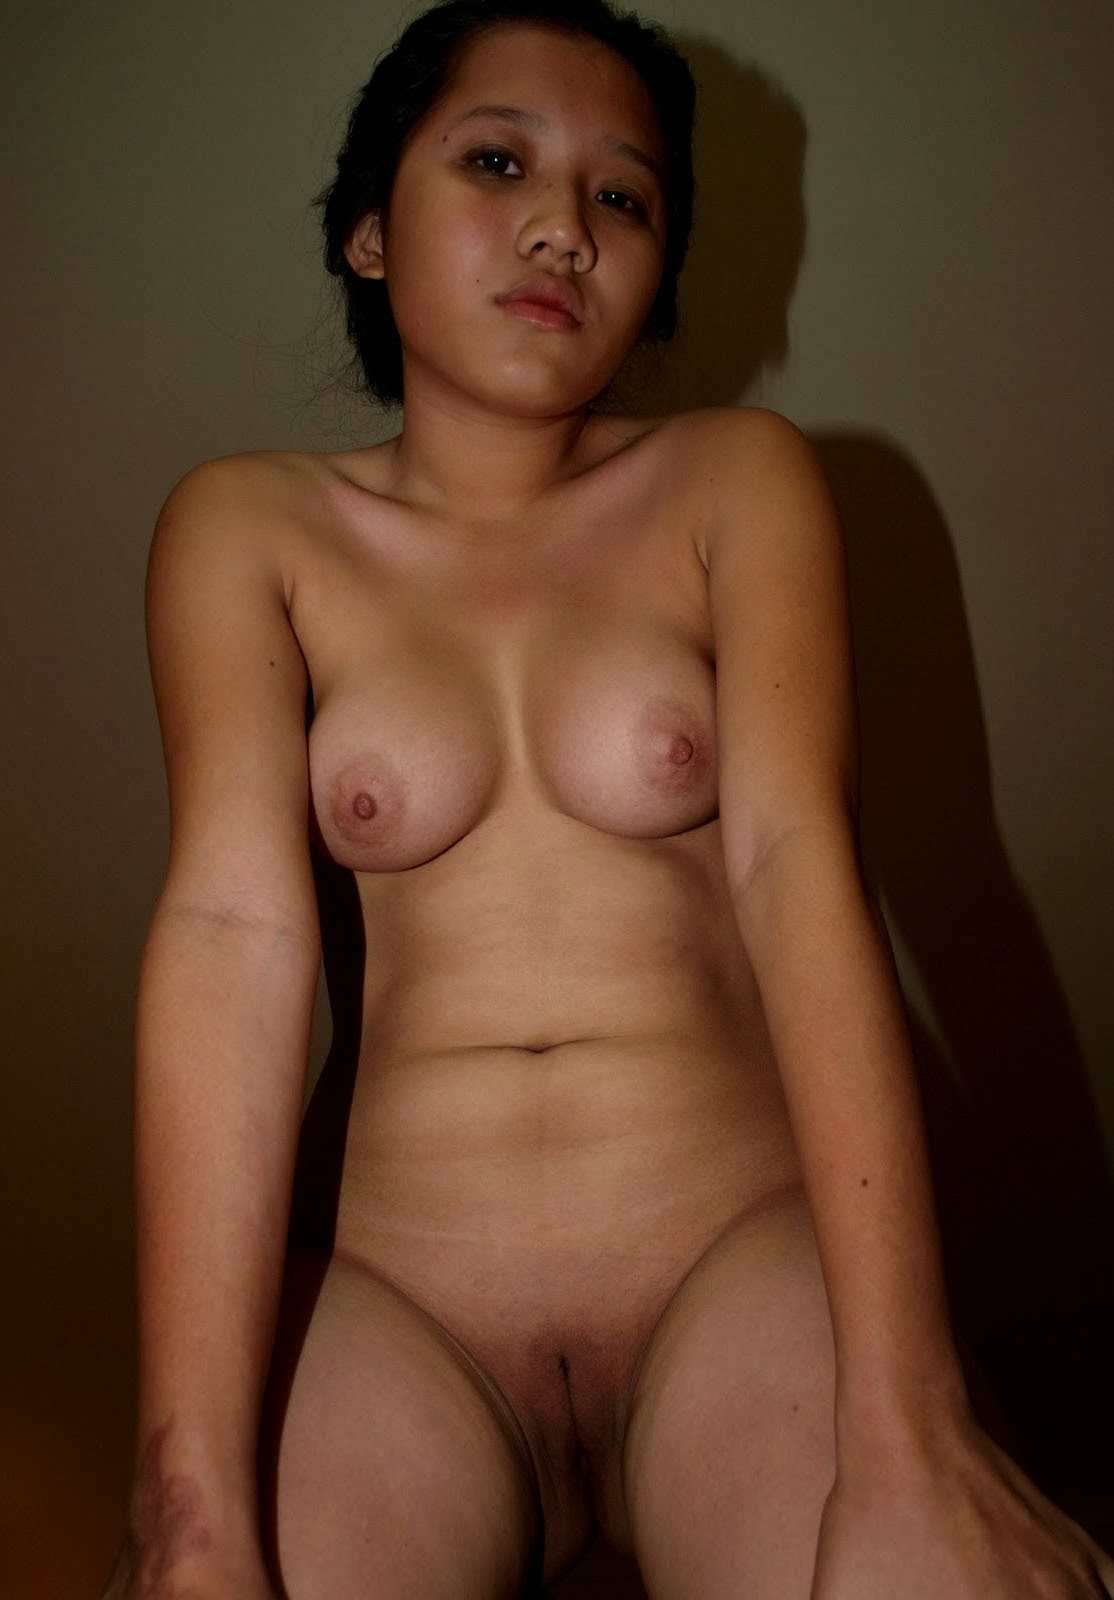 girl nudist